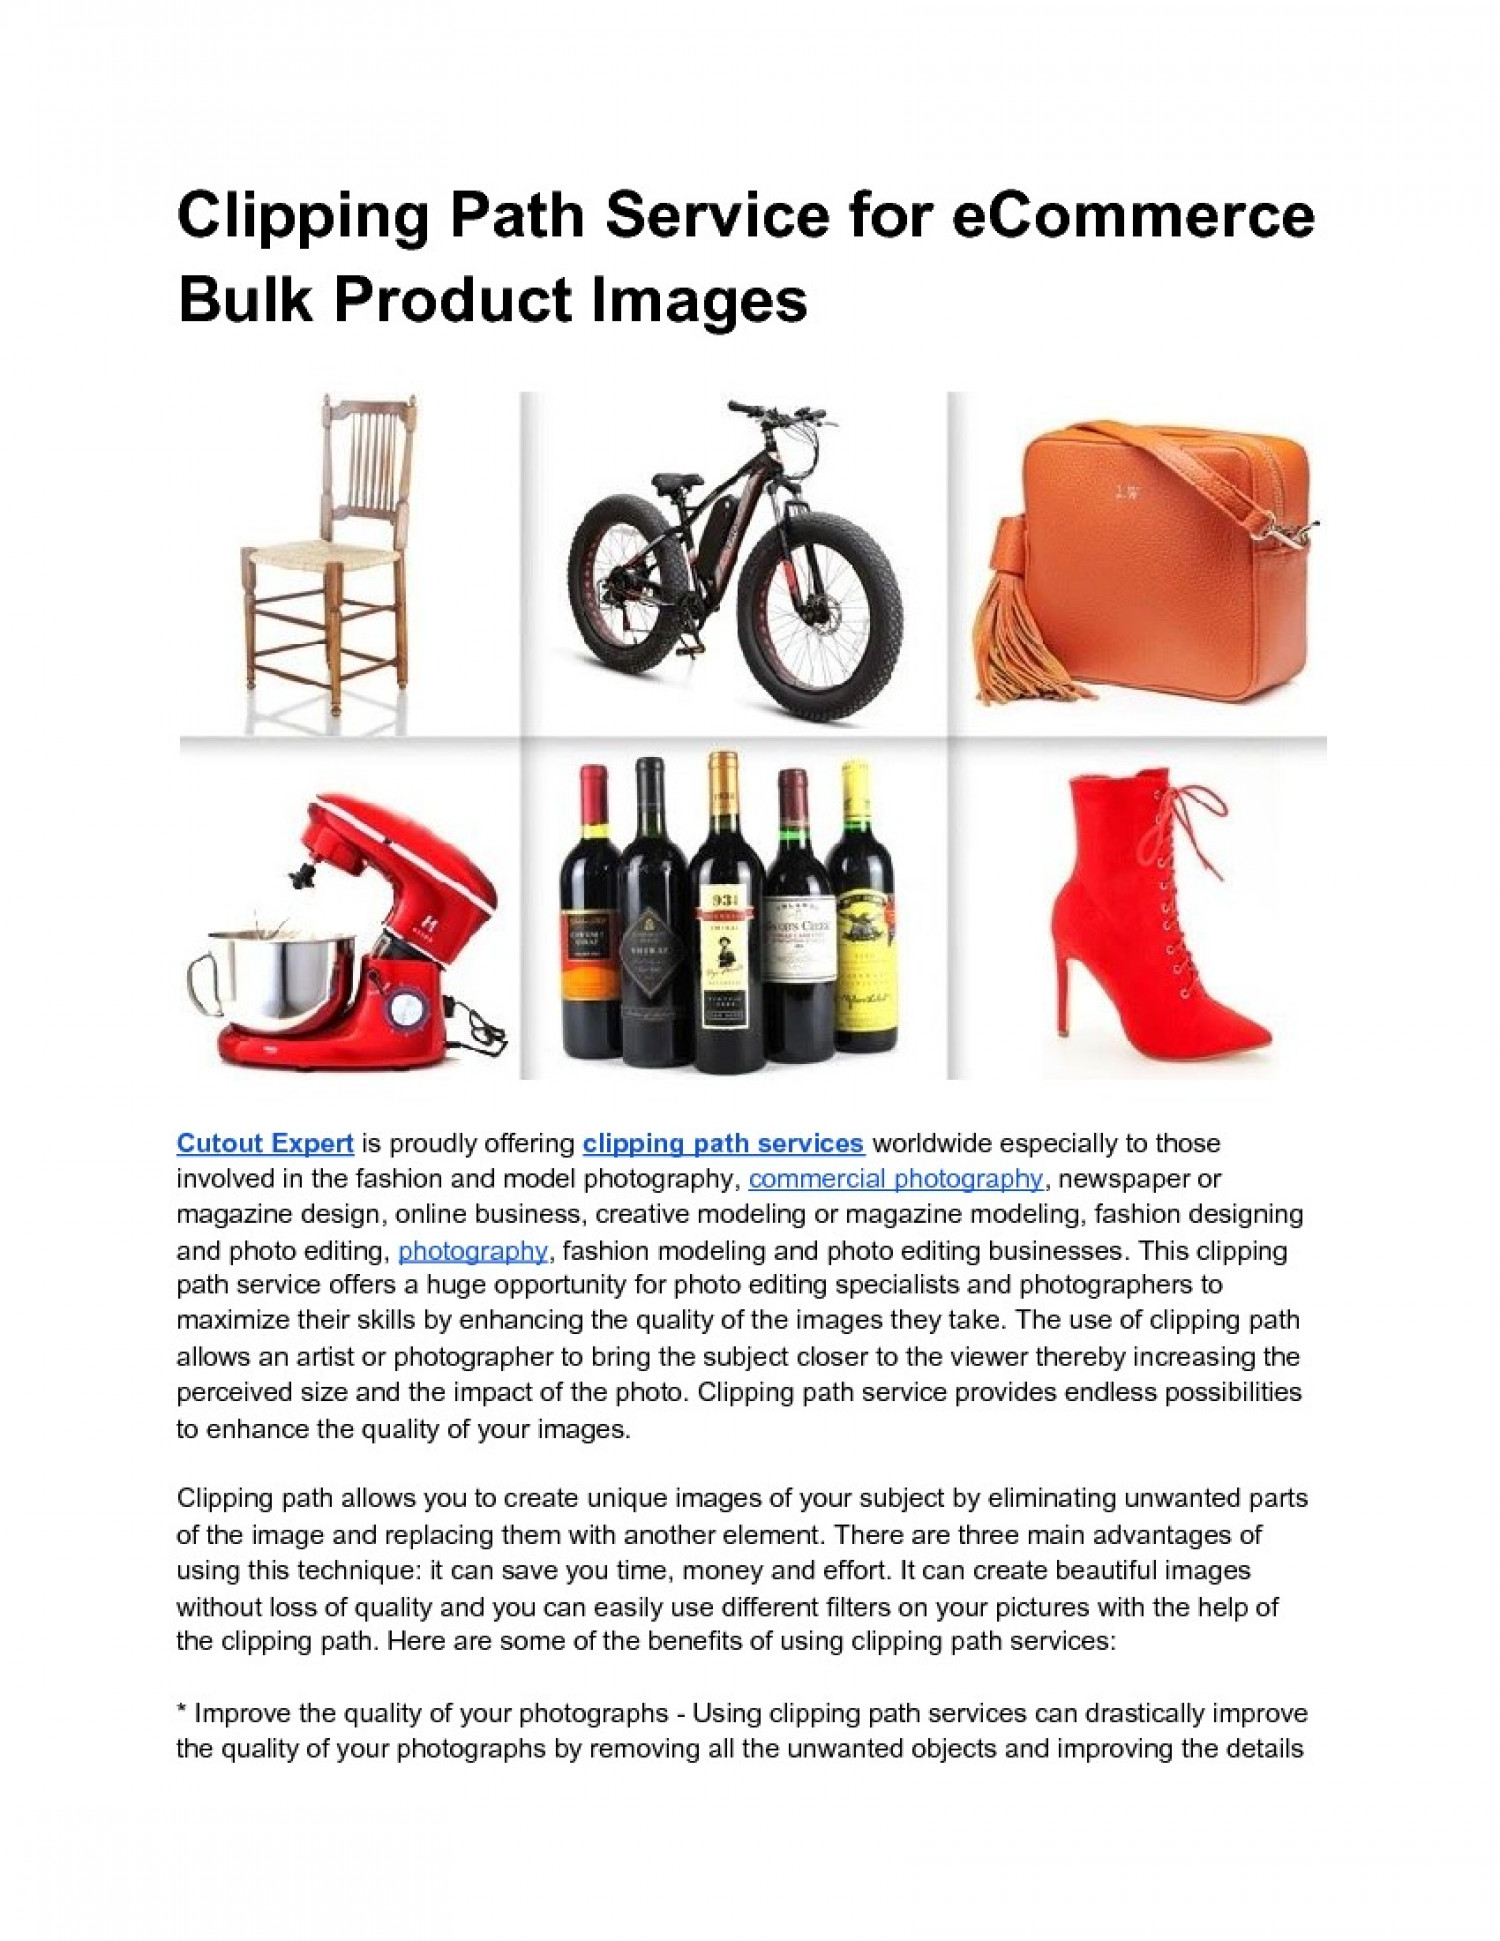 Clipping Path Service for eCommerce Bulk Product Images Infographic